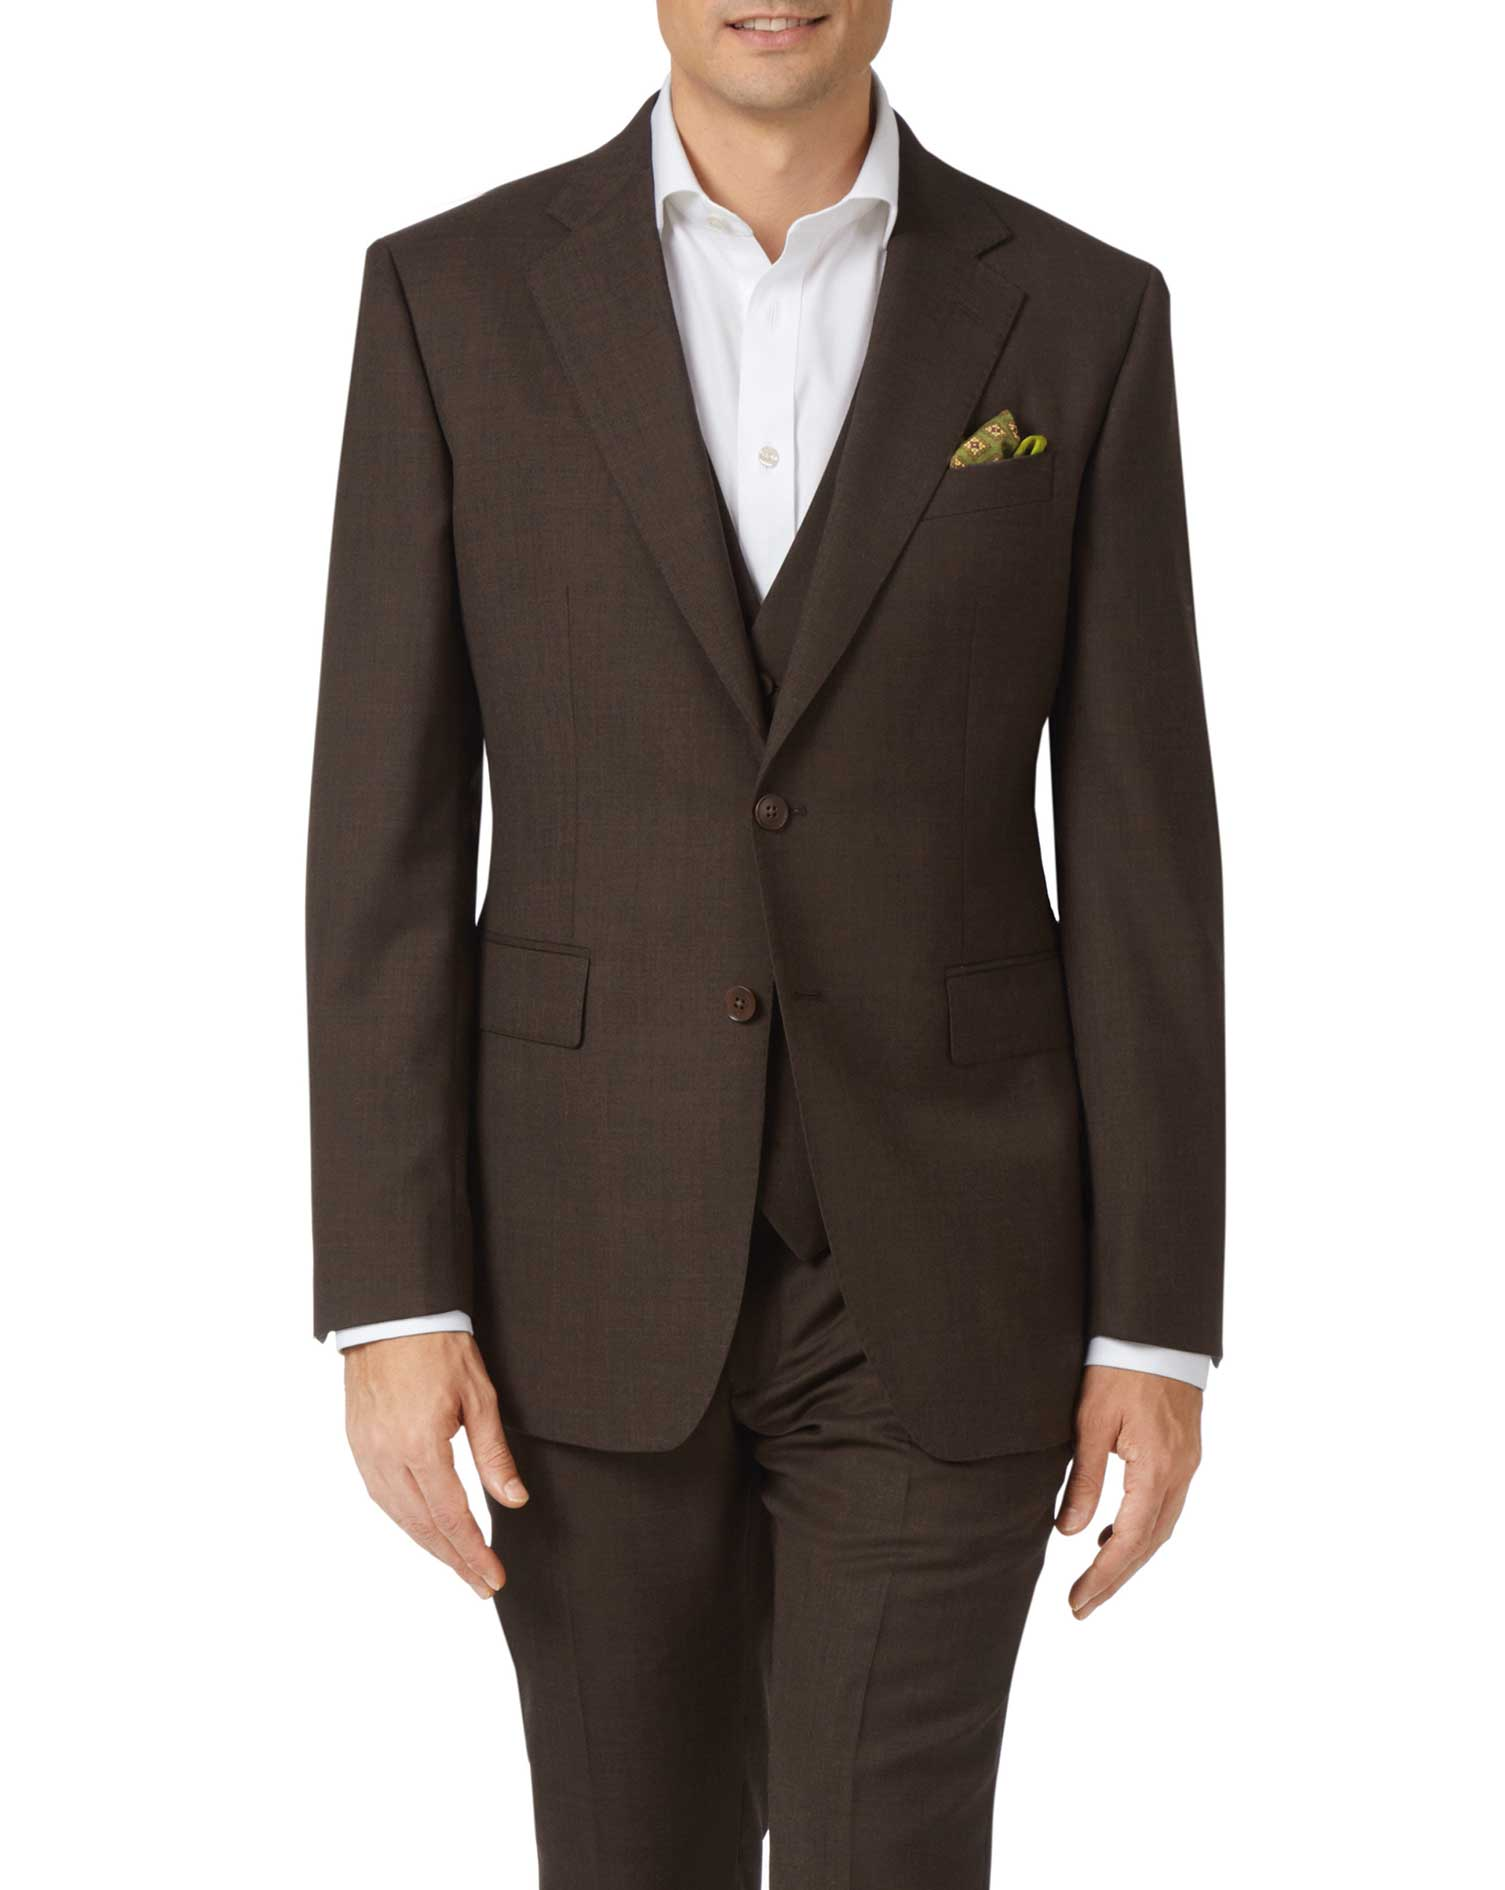 Chocolate Slim Fit Sharkskin Travel Suit Wool Jacket Size 44 Long by Charles Tyrwhitt